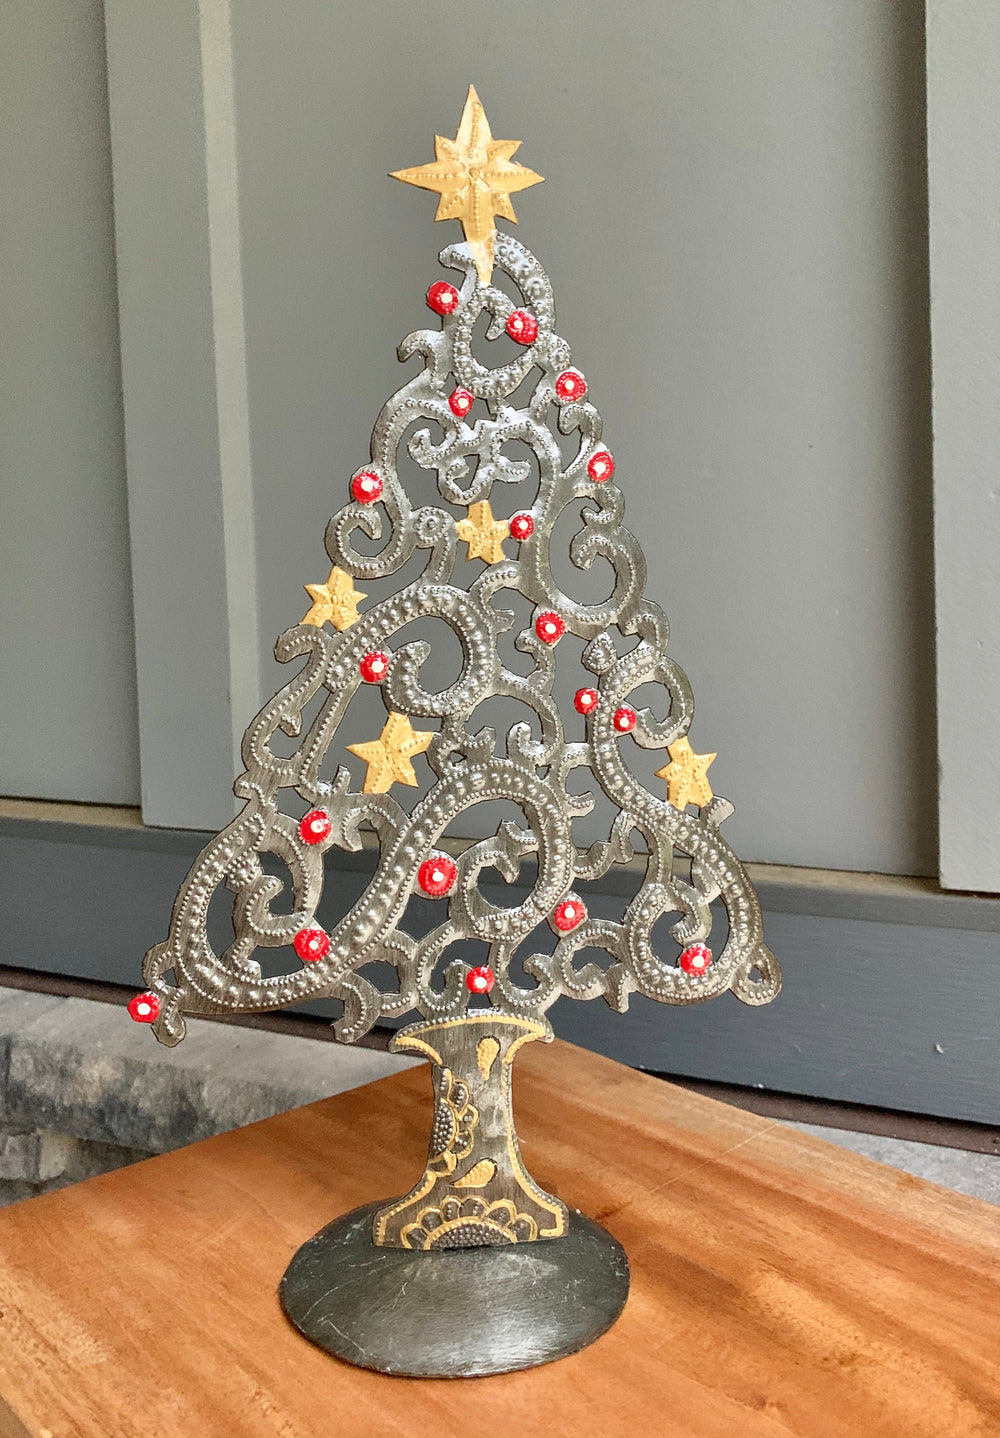 Recycled Steel Drum Christmas Tree by Singing Rooster from Haiti